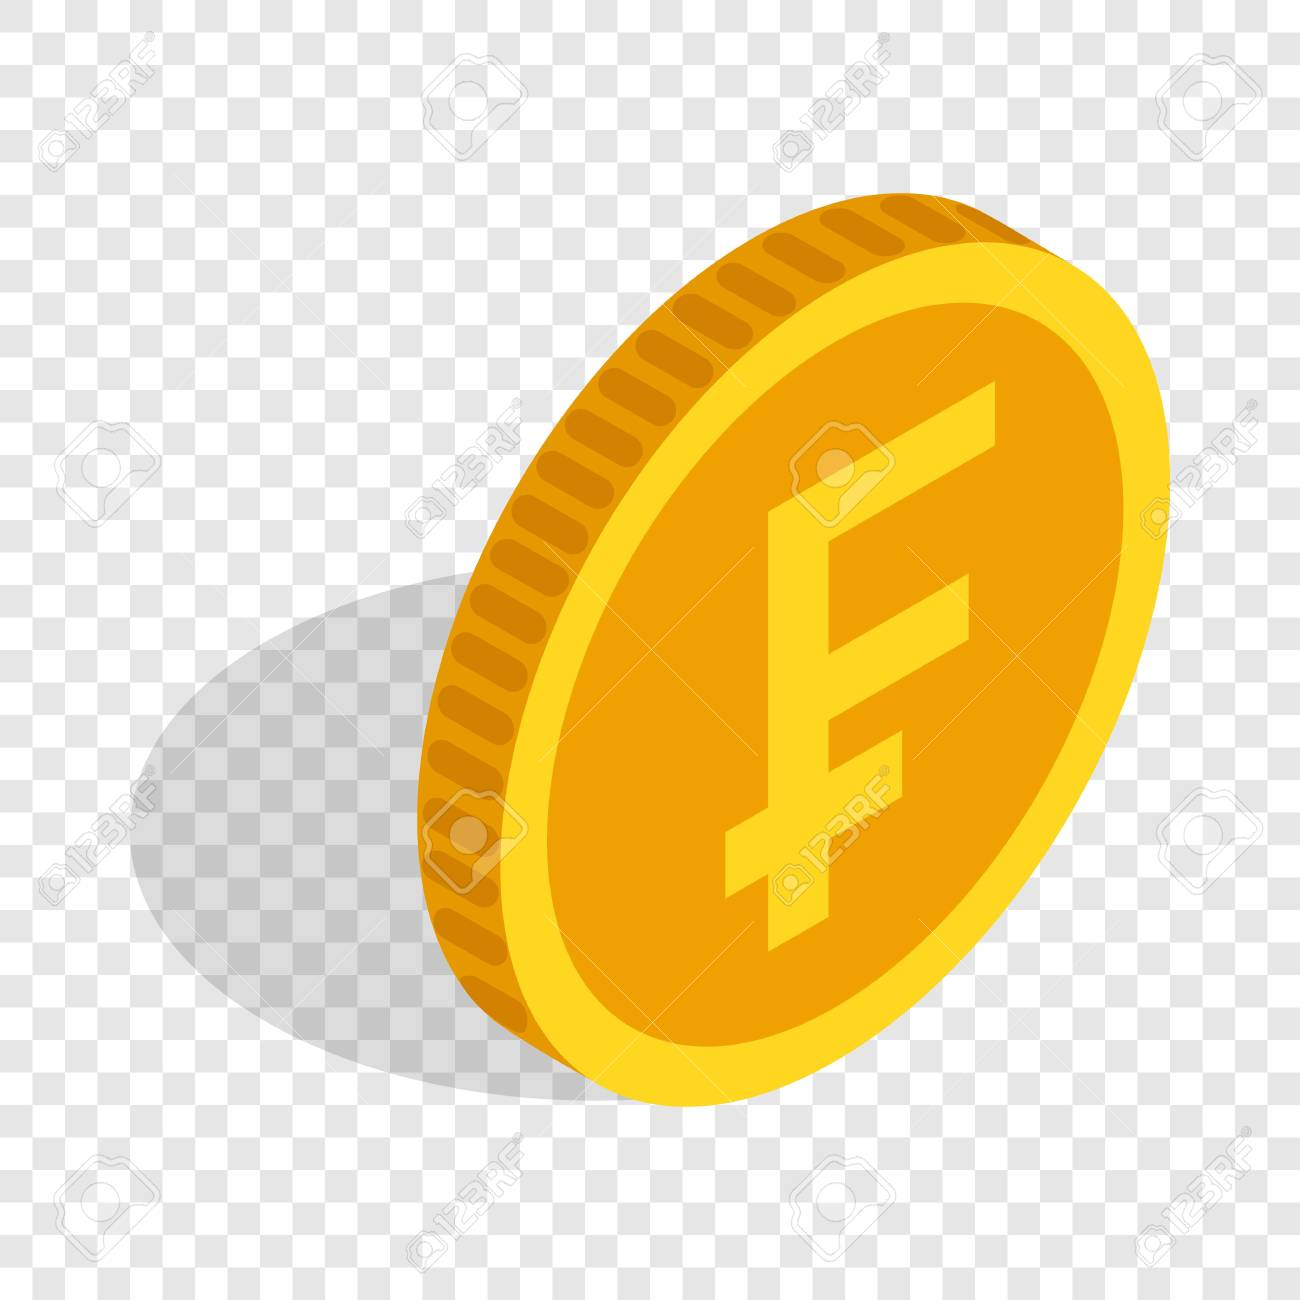 Gold Coin With Swiss Frank Sign Isometric Icon 3d On A Transparent Background Vector Illustration Stock